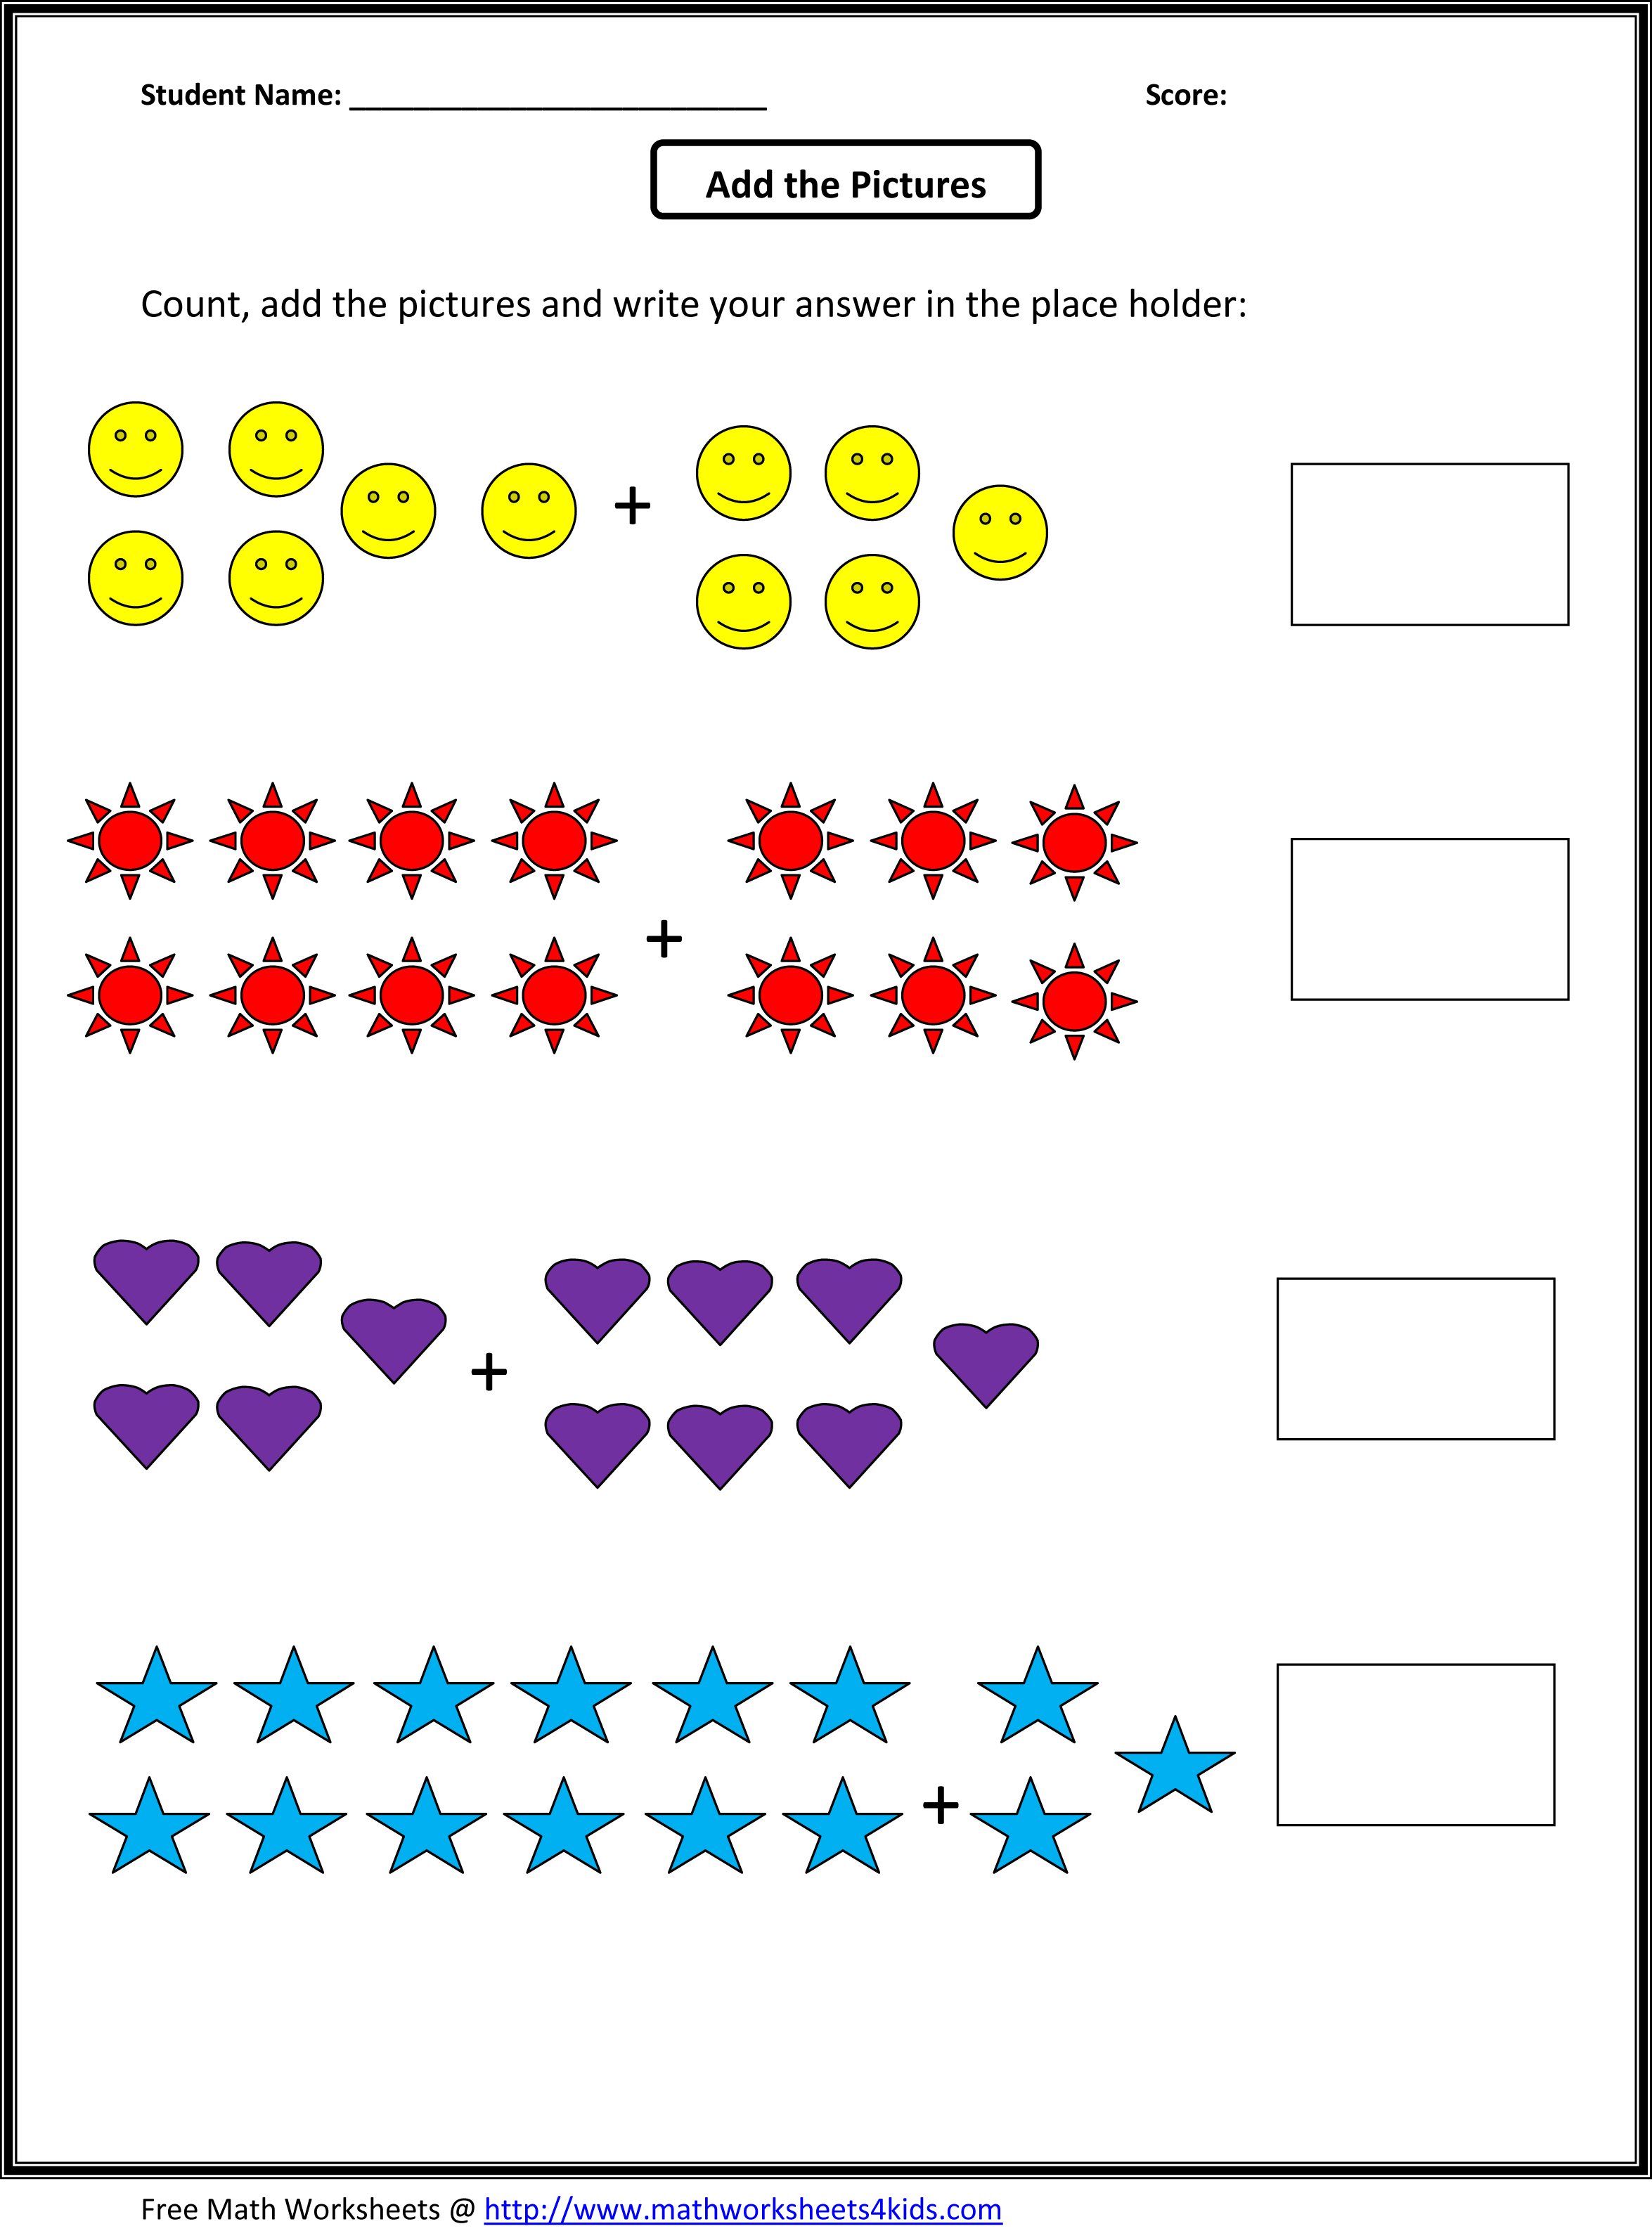 Proatmealus  Terrific Grade  Maths Worksheet  Reocurent With Luxury Math Worksheets For St Grade Free  Reocurent With Endearing Square Root Worksheets Also Multiplication Practice Worksheets In Addition Acids And Bases Worksheet Answers And Scatter Plots And Lines Of Best Fit Worksheet As Well As Shape Worksheets Additionally Conservation Of Mass Worksheet Answers From Reocurentcom With Proatmealus  Luxury Grade  Maths Worksheet  Reocurent With Endearing Math Worksheets For St Grade Free  Reocurent And Terrific Square Root Worksheets Also Multiplication Practice Worksheets In Addition Acids And Bases Worksheet Answers From Reocurentcom